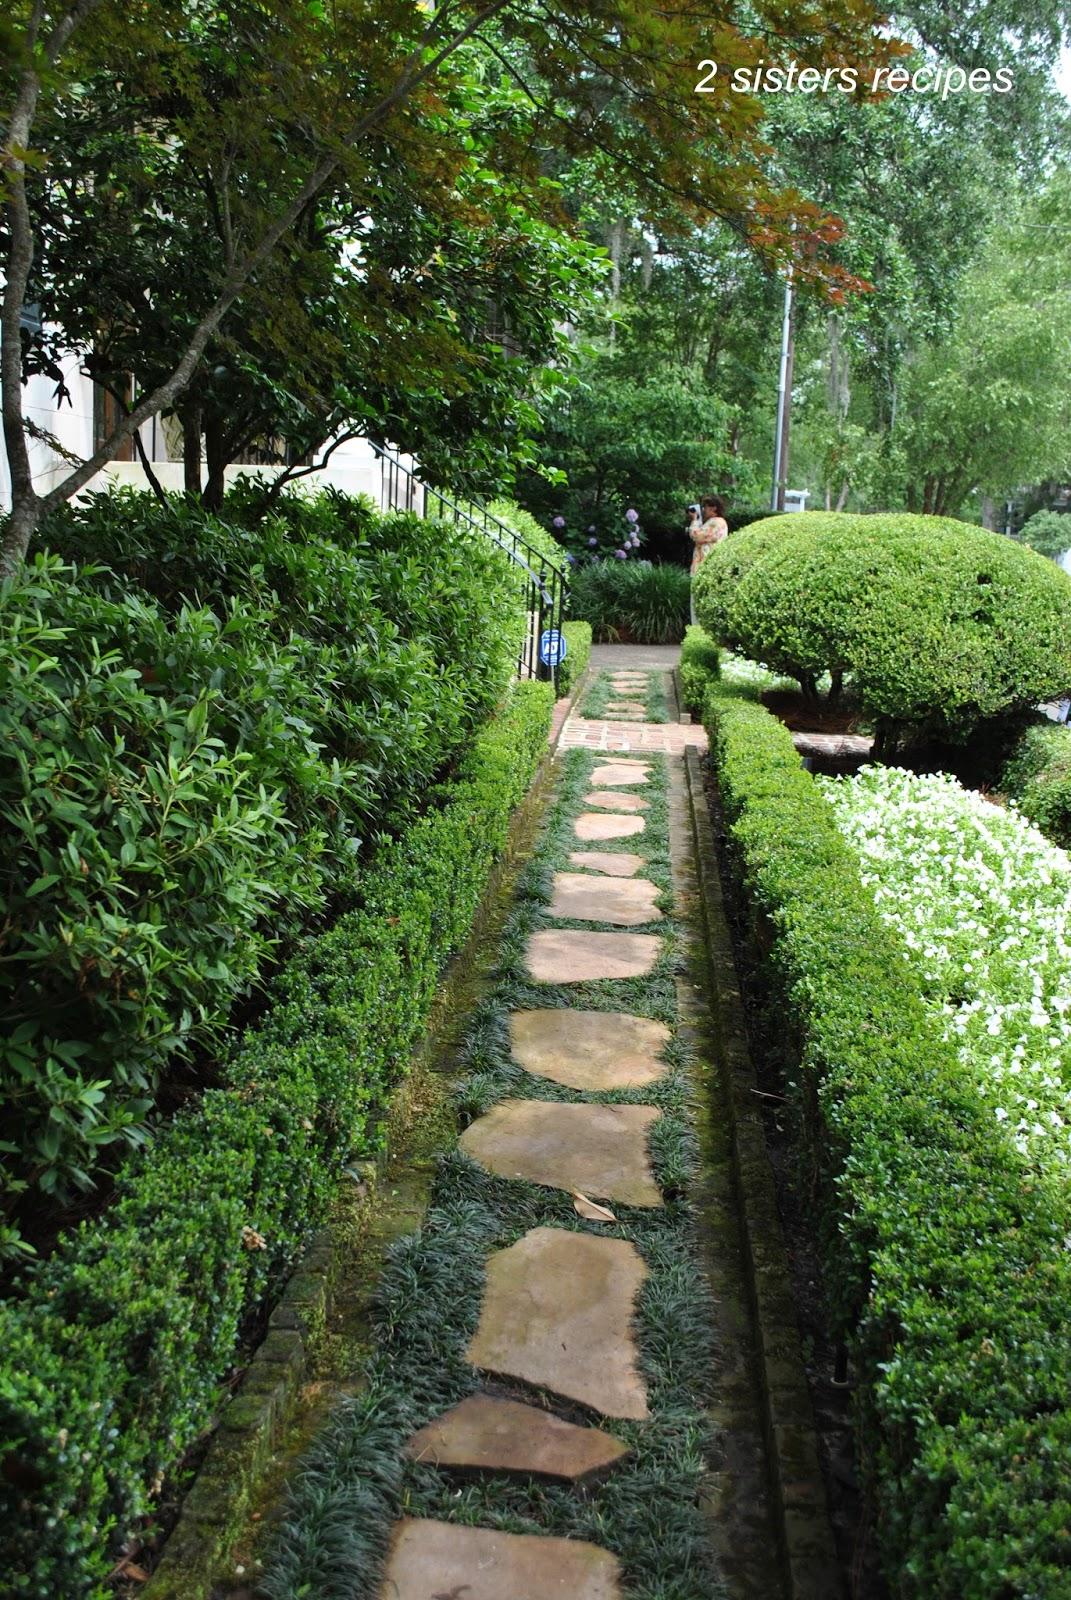 Charleston annual garden tour part i 2 sisters recipes for Landscaping rocks charleston sc